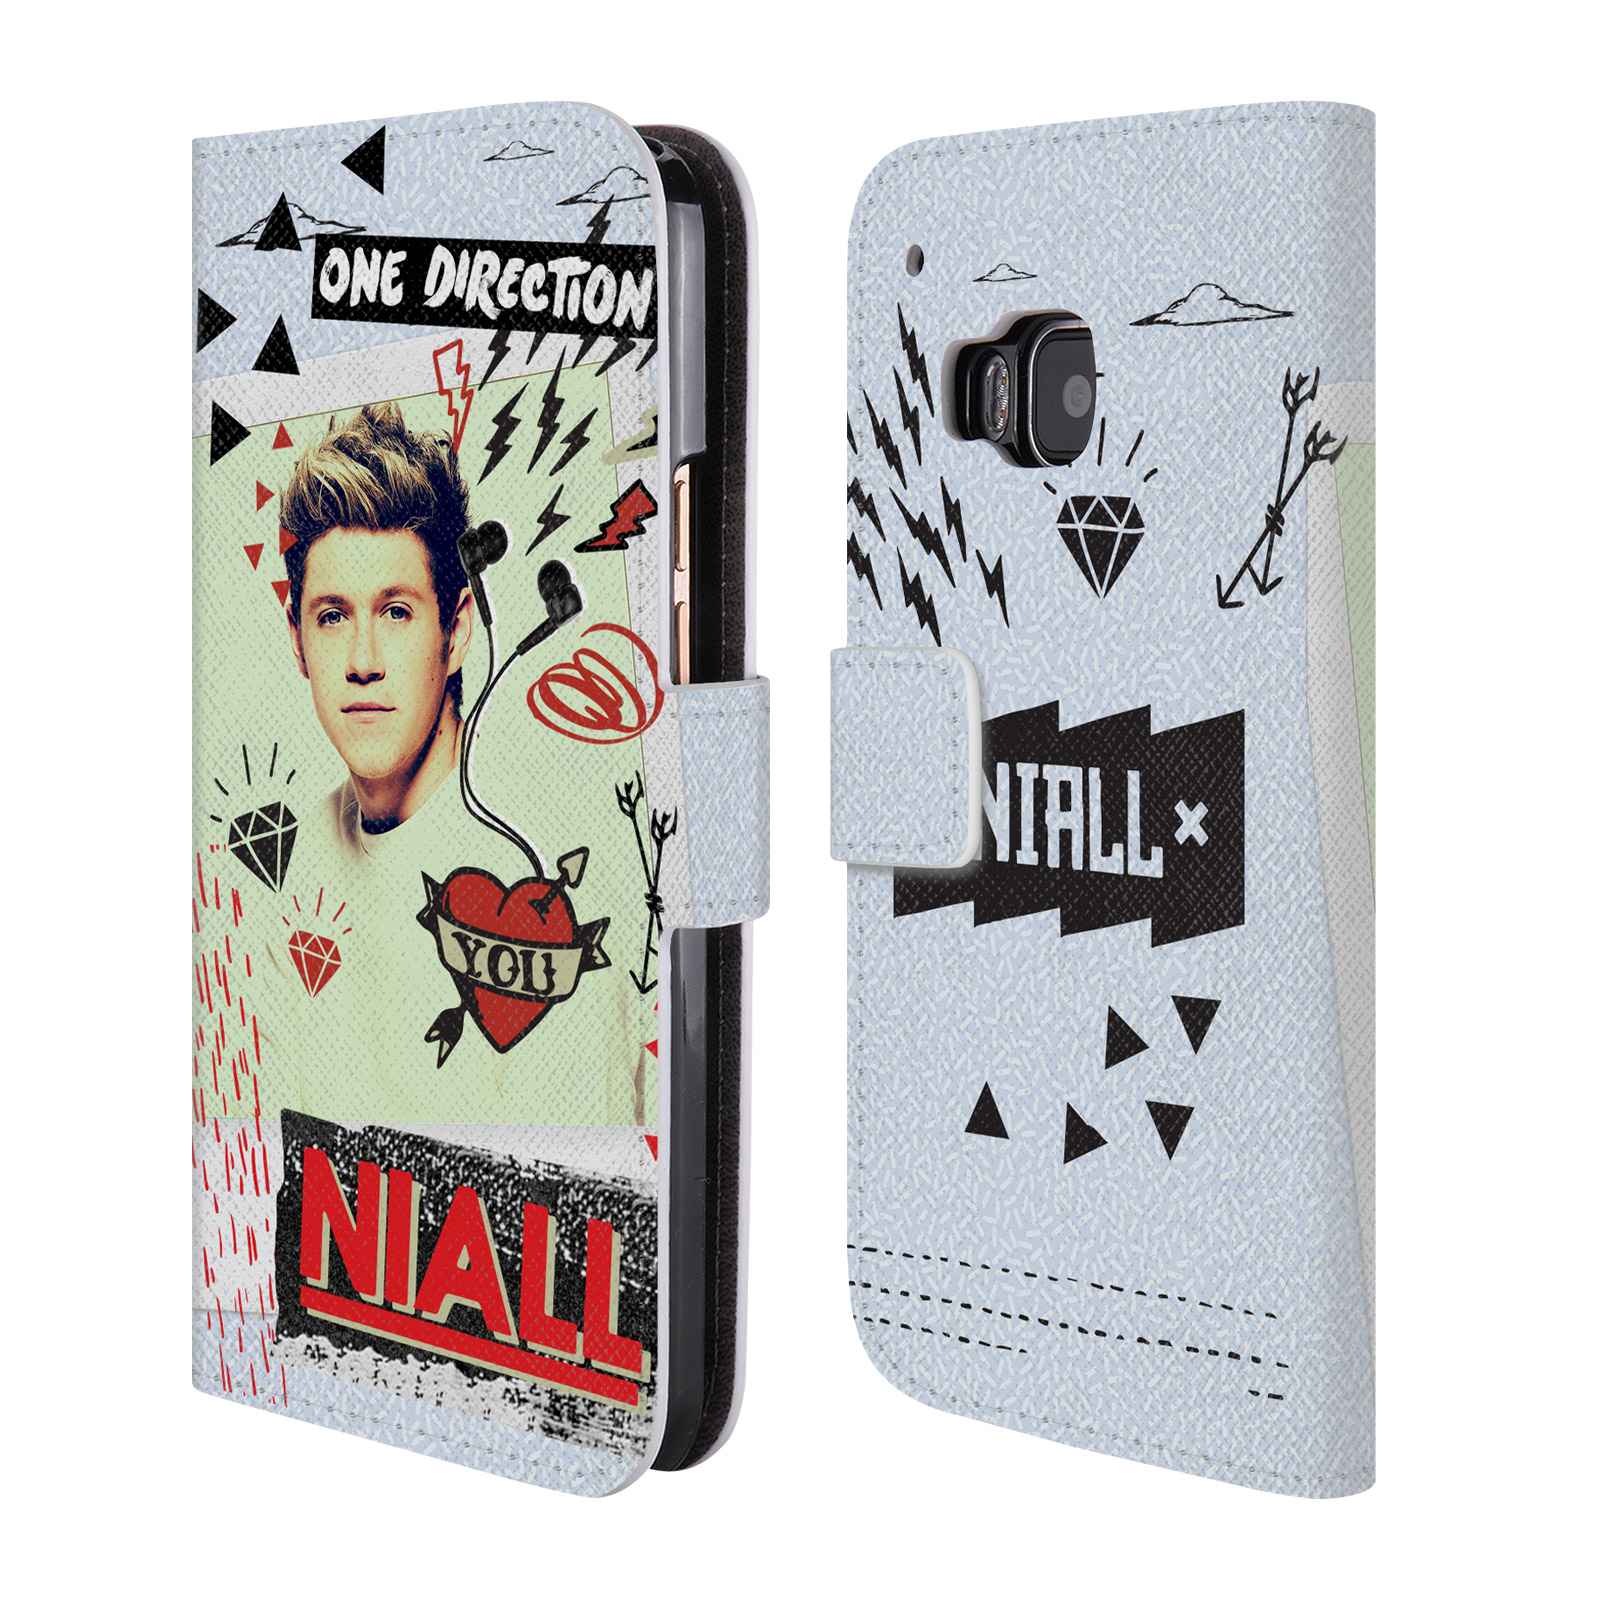 Officiel-One-Direction-1D-Midnight-Niall-cuir-Livre-etui-pour-telephones-htc-1